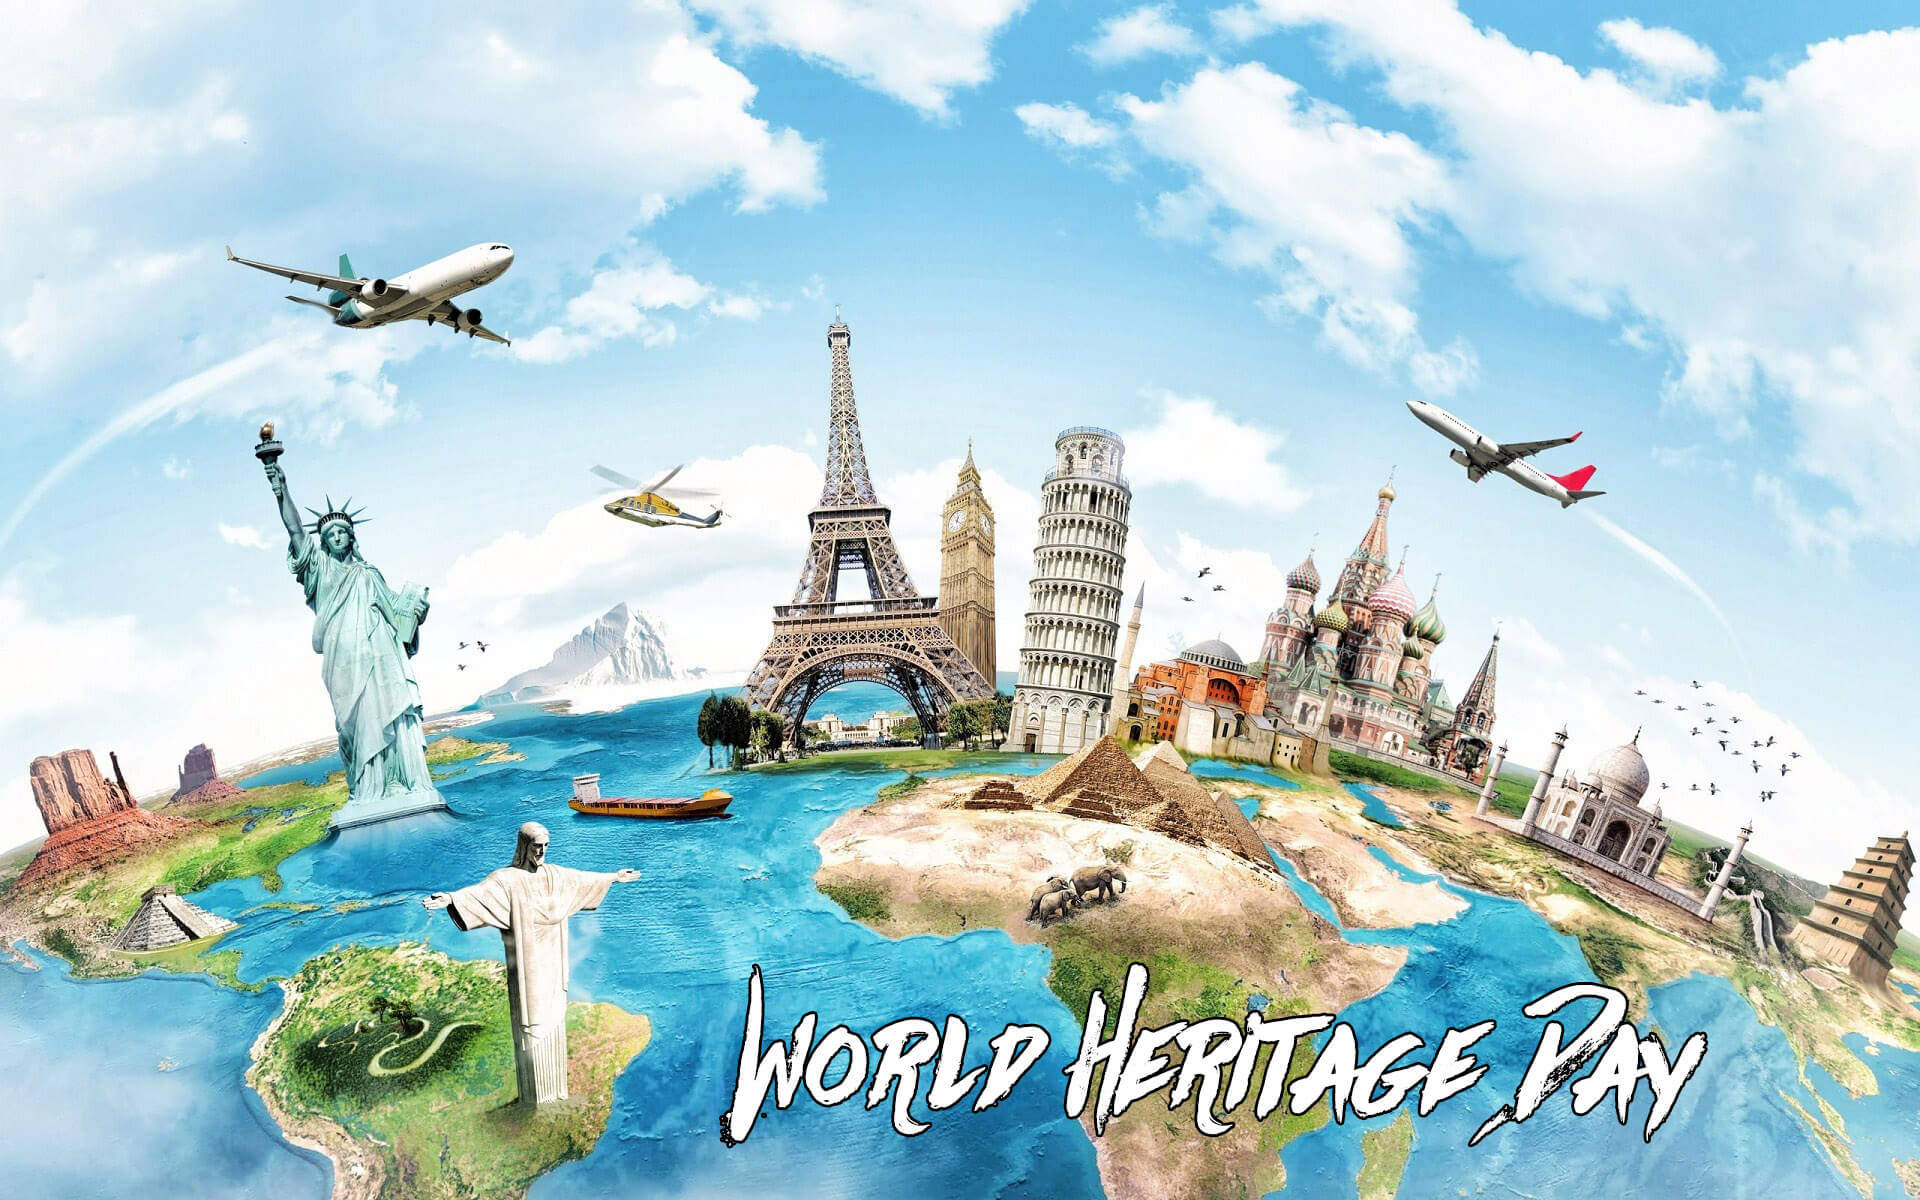 world heritage day 7 wonders monuments hd wallpaper